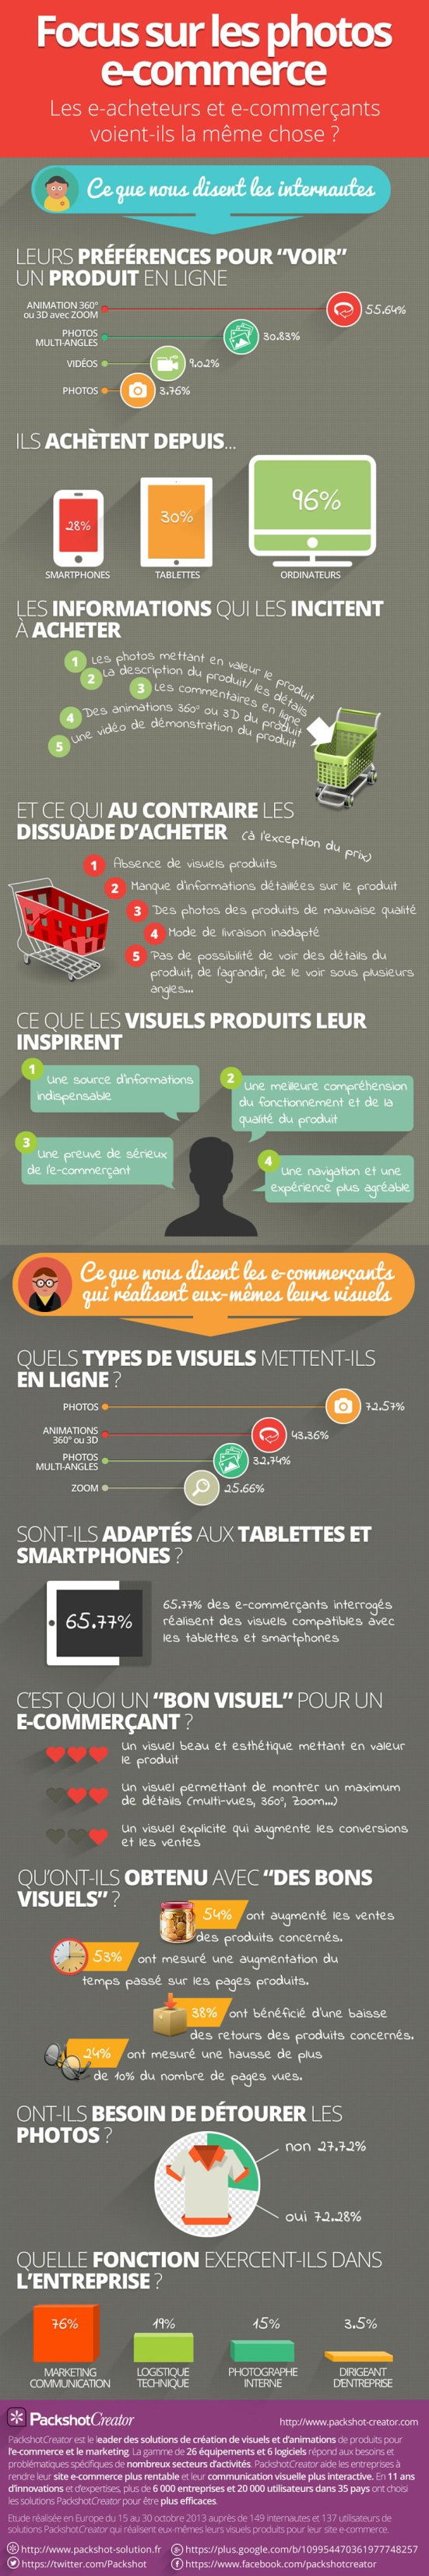 Focus sur les photos e-commerce